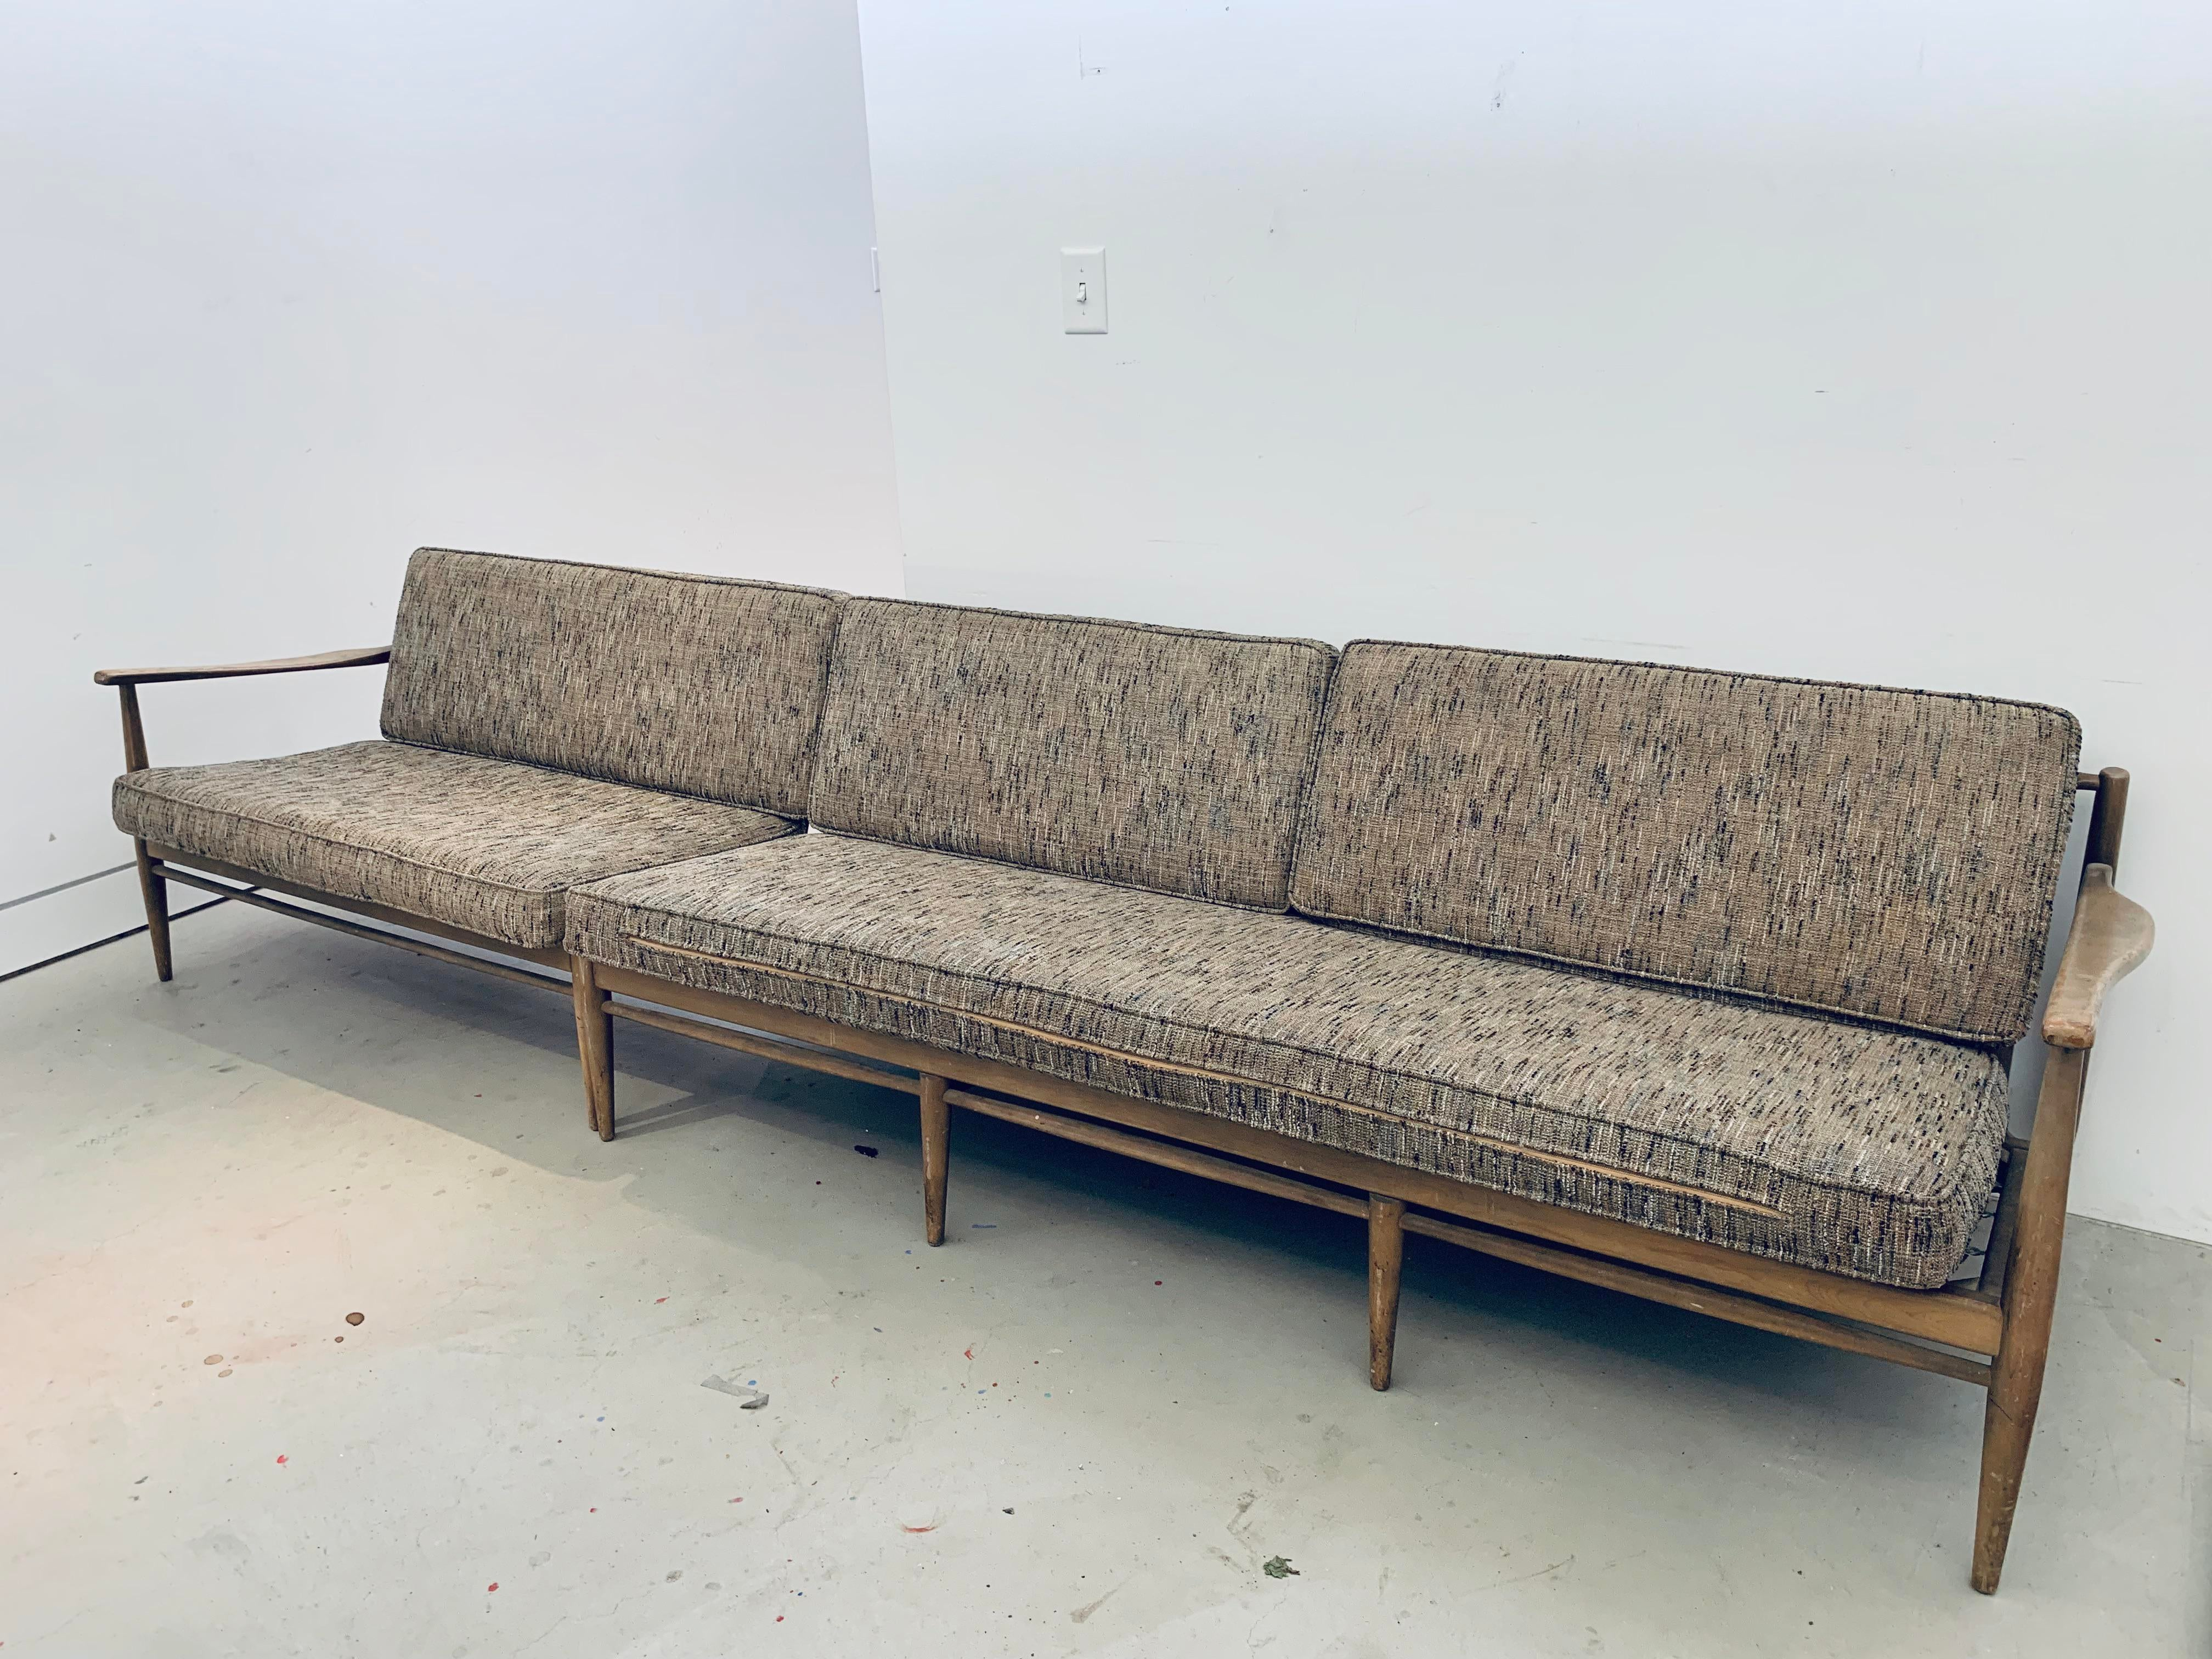 Exceptionnel Two Piece Original Mid Century Modern Danish Sofa. May Be Used As A